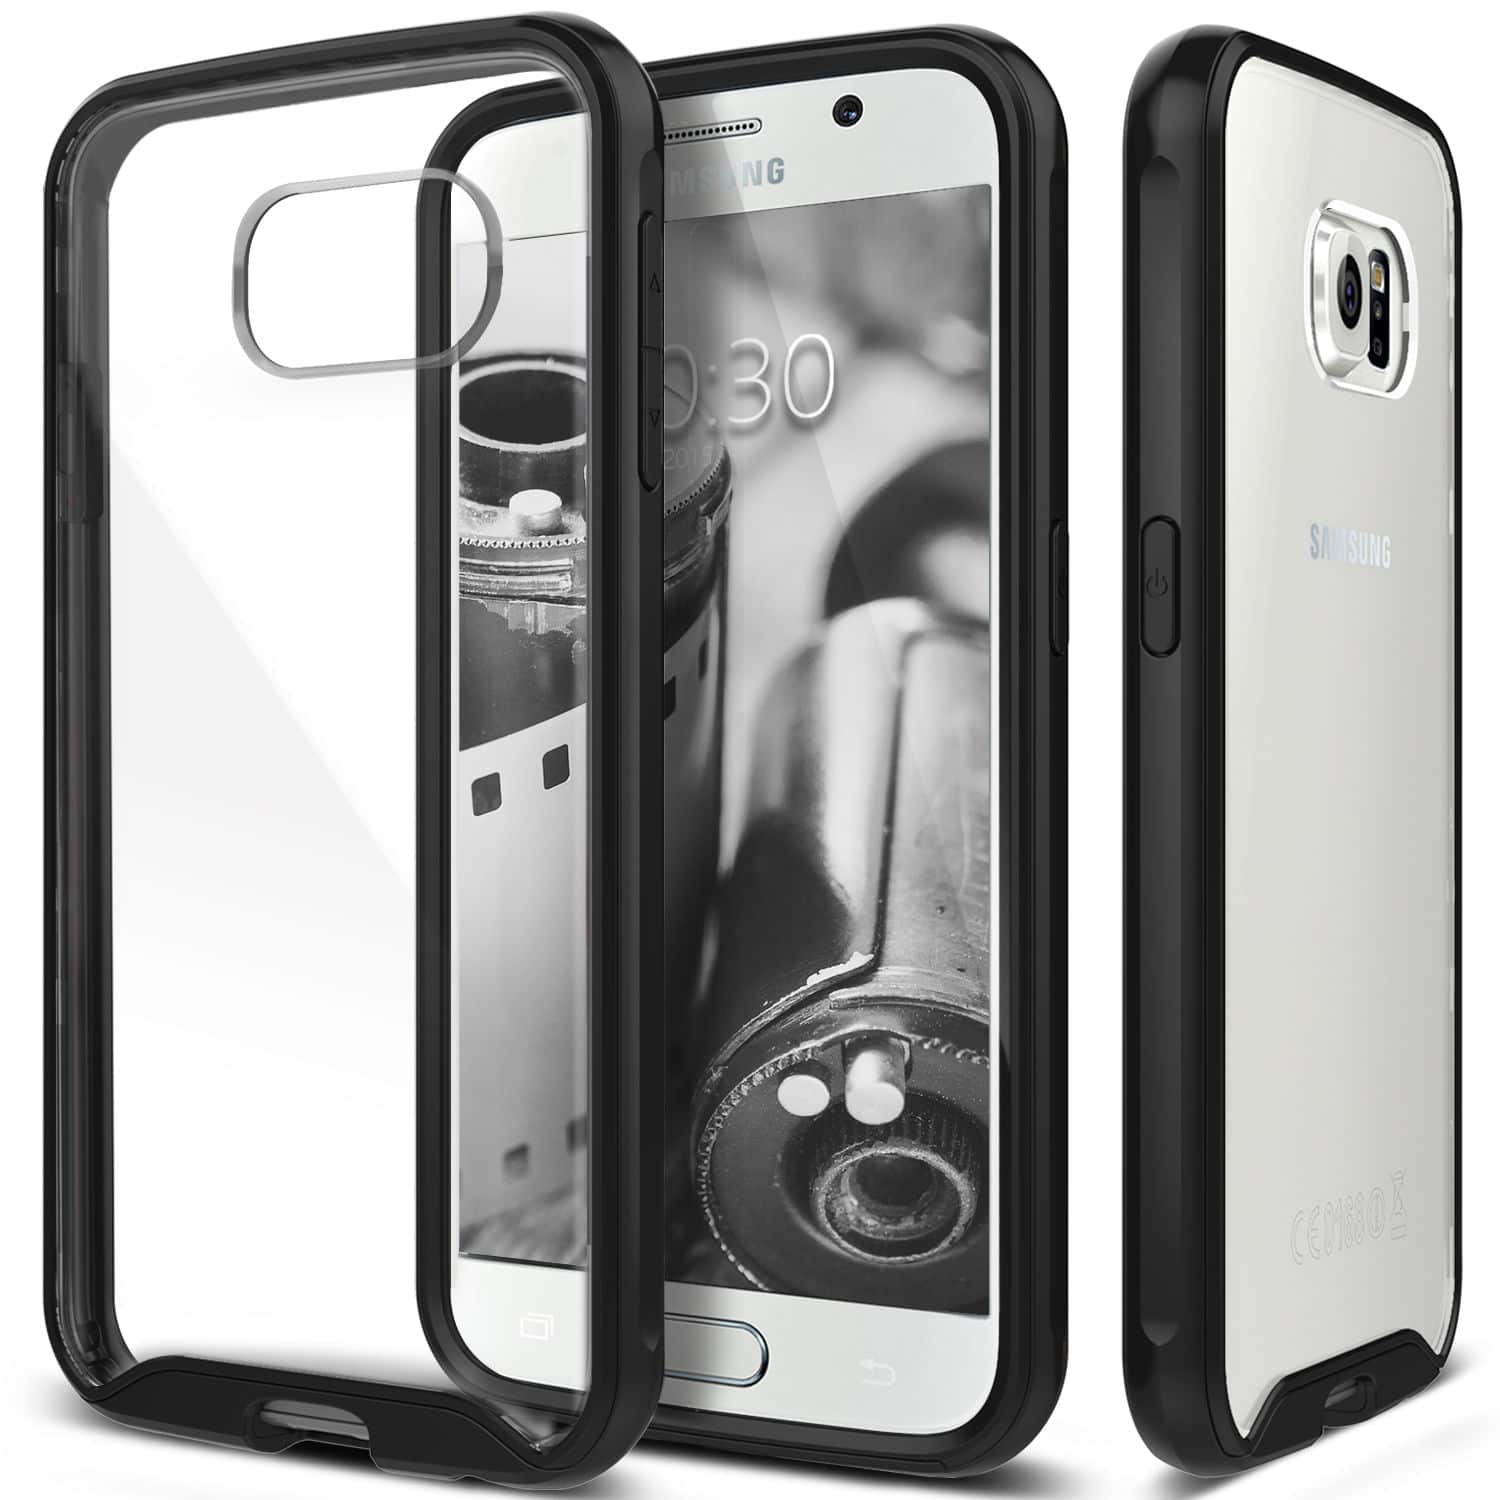 Caseology Cases: Galaxy S5/S6, iPhone 6/6S/6 Plus/6S Plus/SE  from $4 & More + Free S&H